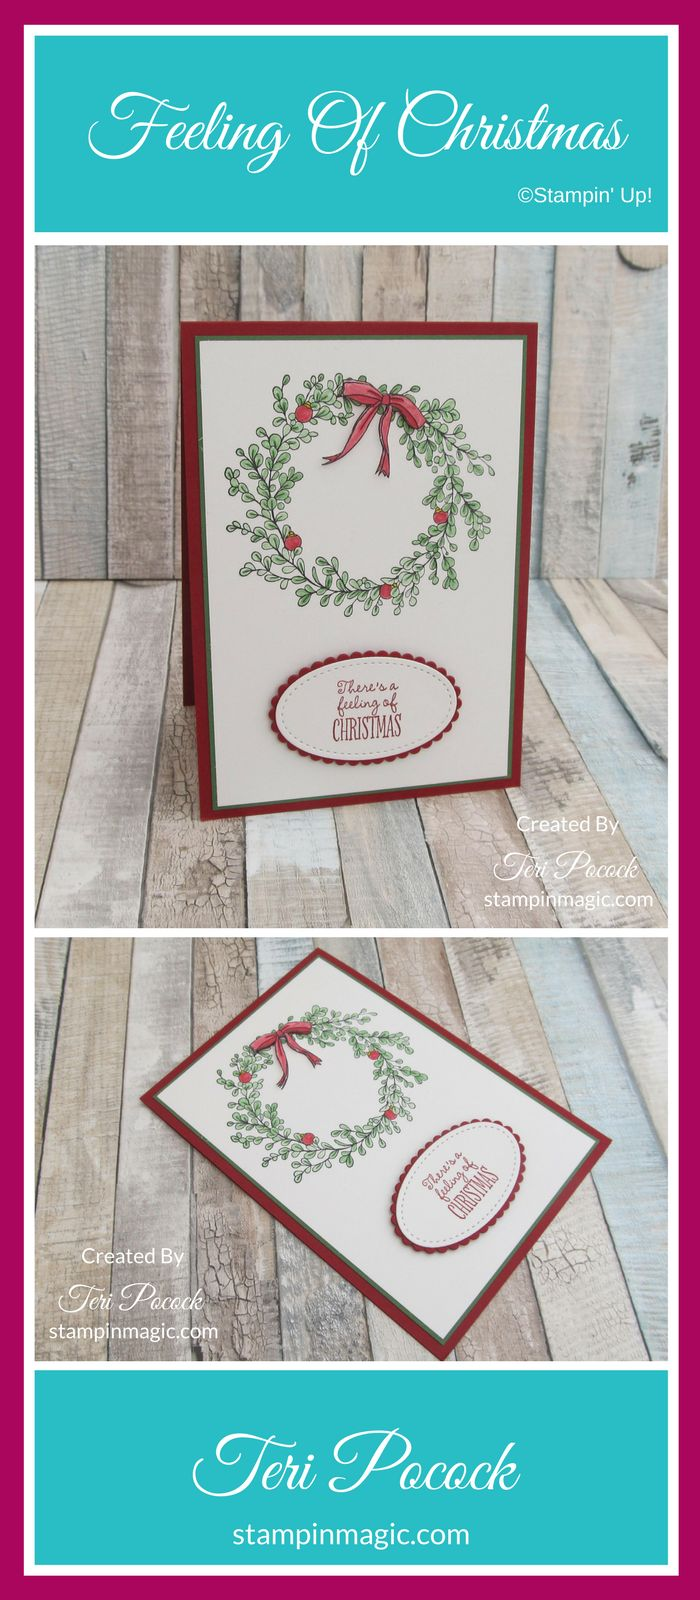 Feeling of Christmas By Stampin Up. Created by UK Independent Demonstrator Teri Pocock. Click through for more details.#teripocock #stampinup #stampinupuk #feelingofchristmas